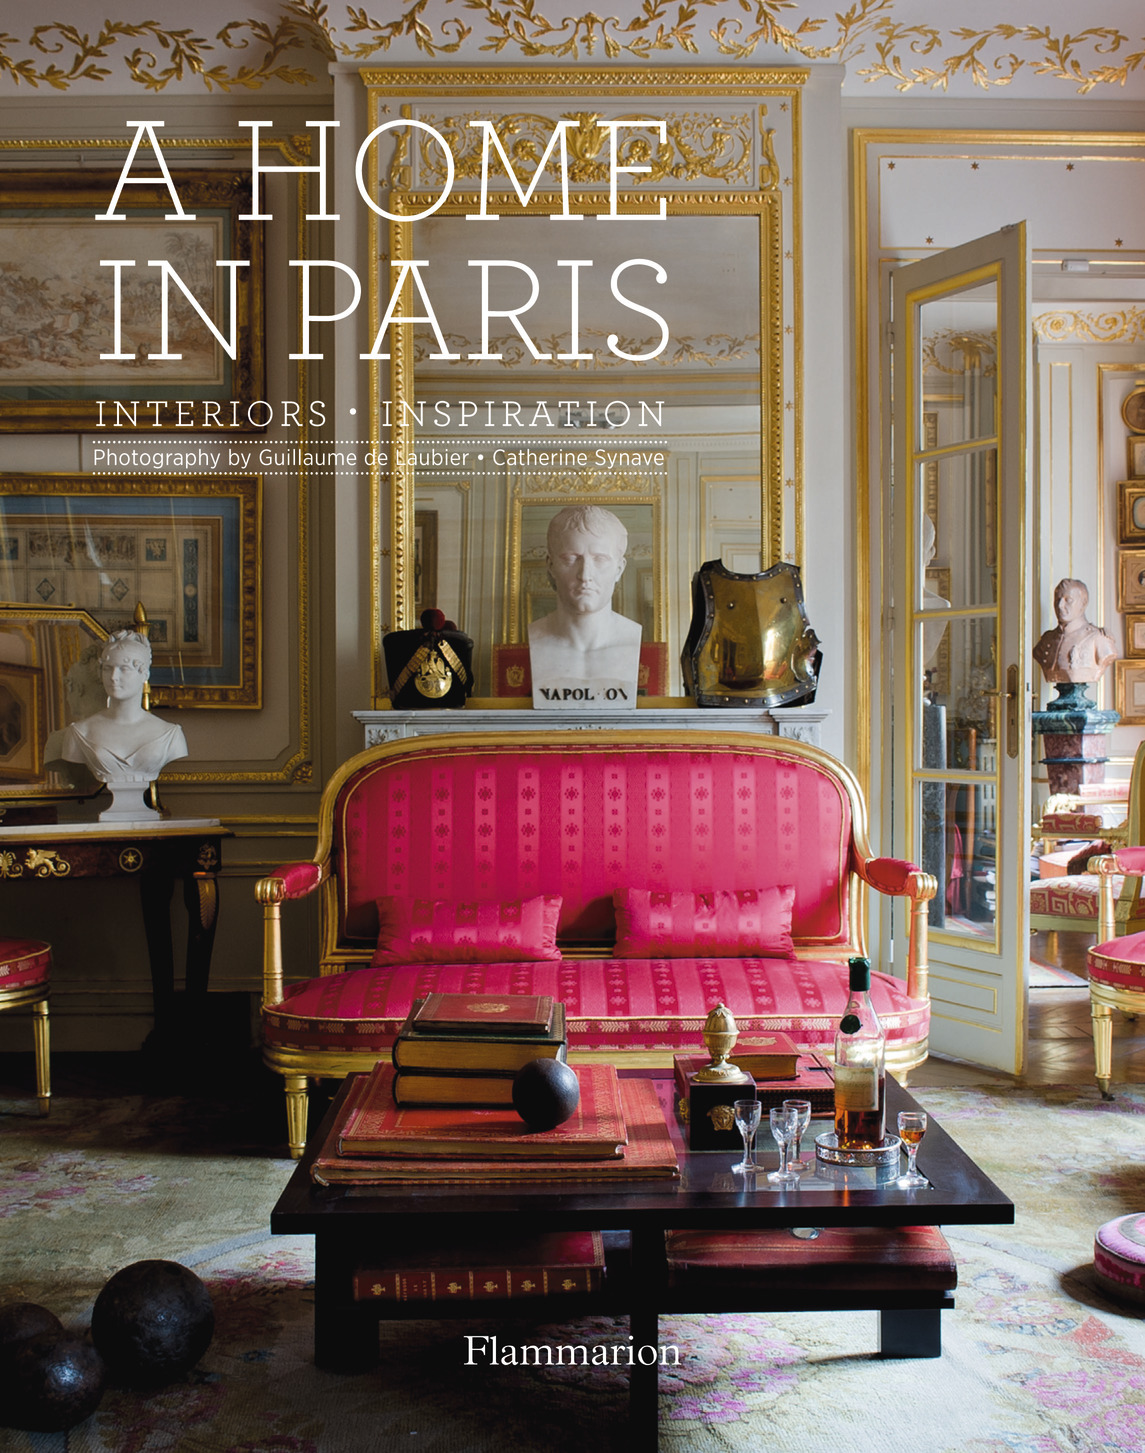 A HOME IN PARIS - INTERIORS, INSPIRATION